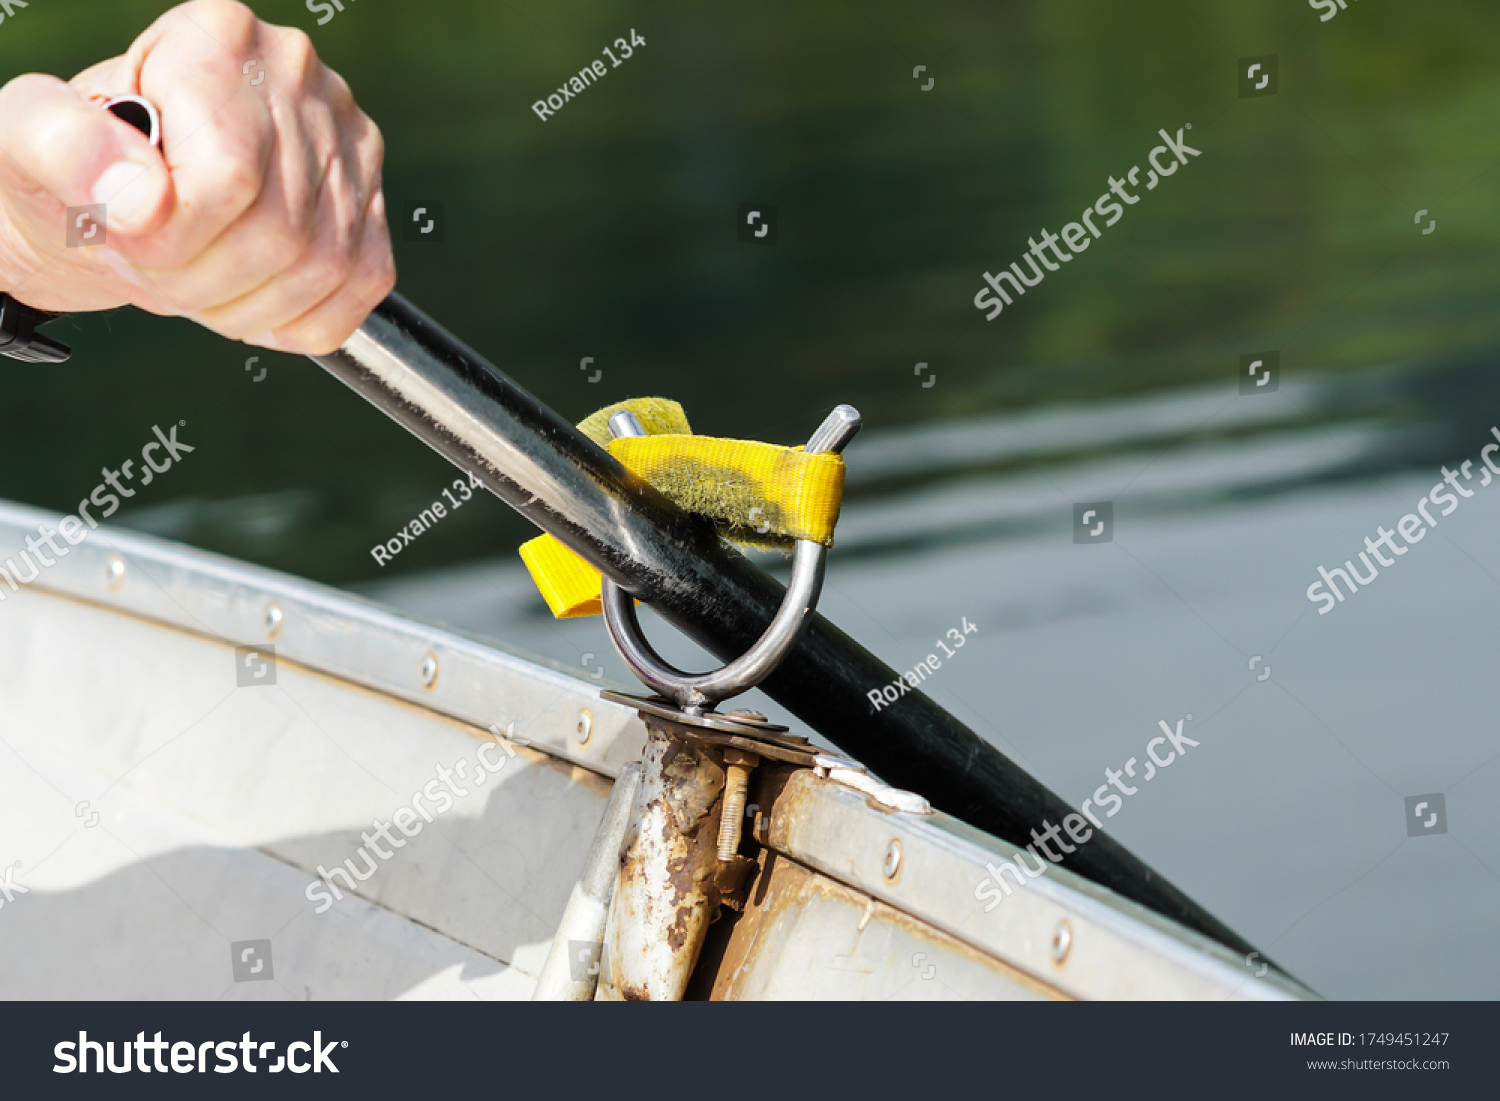 stock-photo-oar-lock-on-a-row-boat-with-